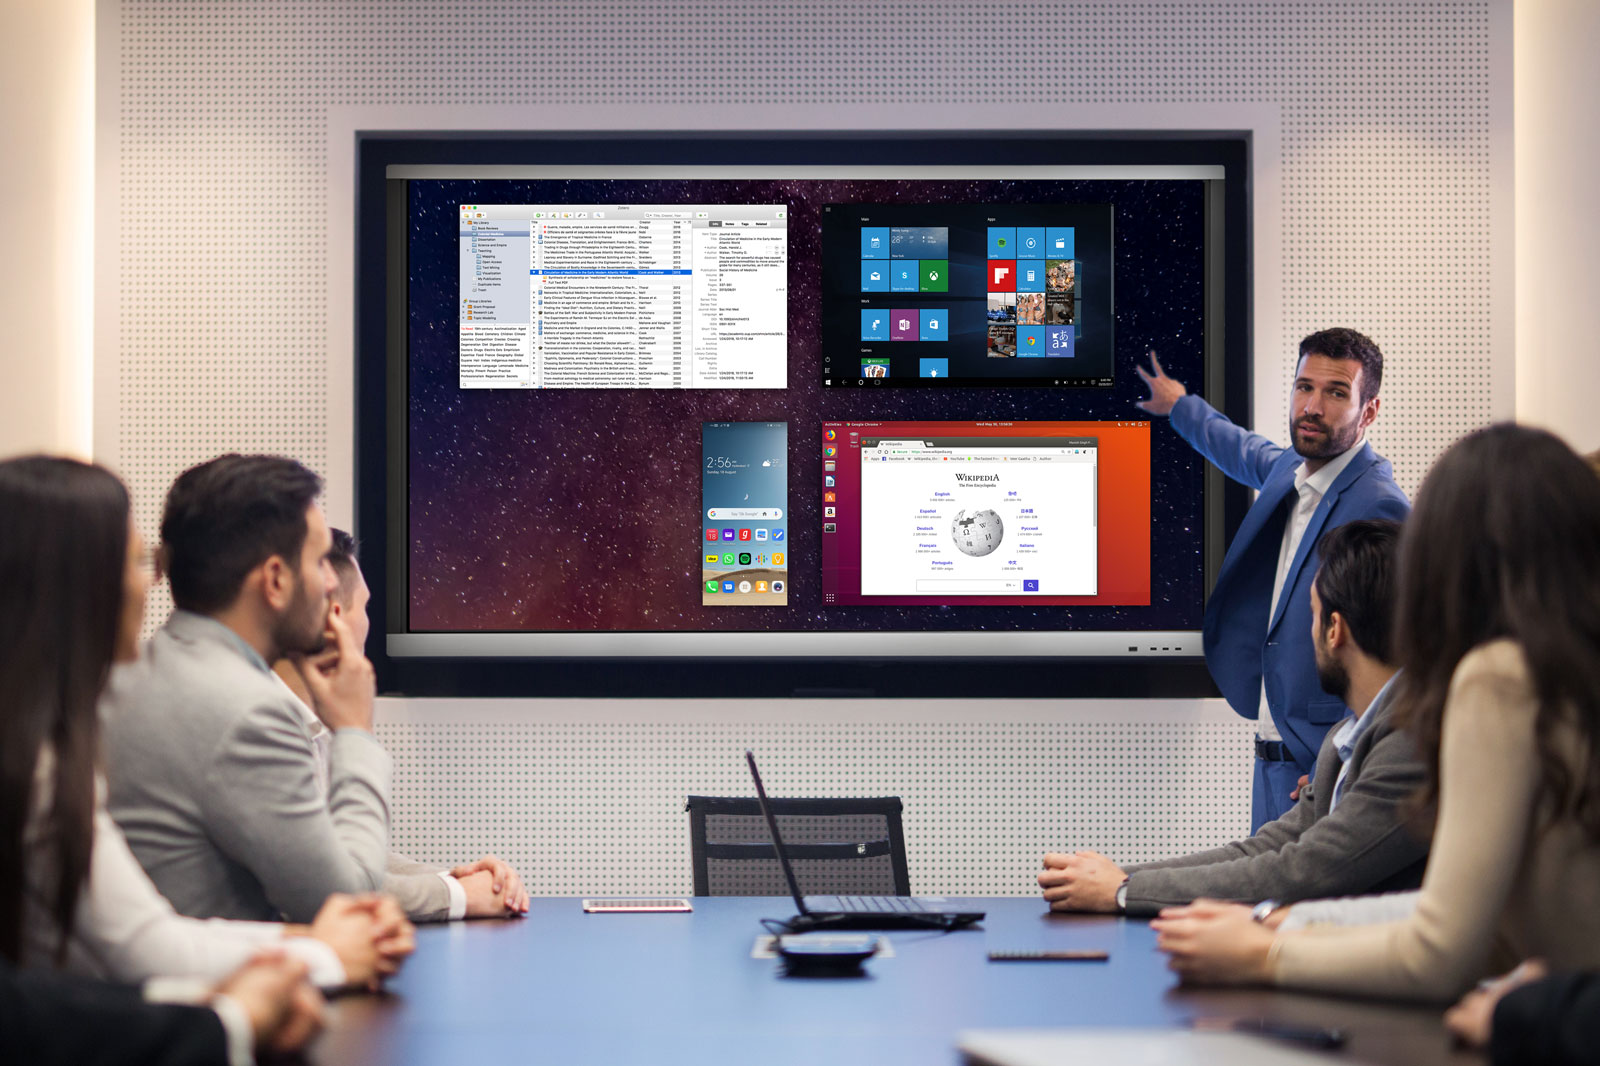 With csubtil TEAM MATE range interactive touchscreens, participants can simultaneously display content